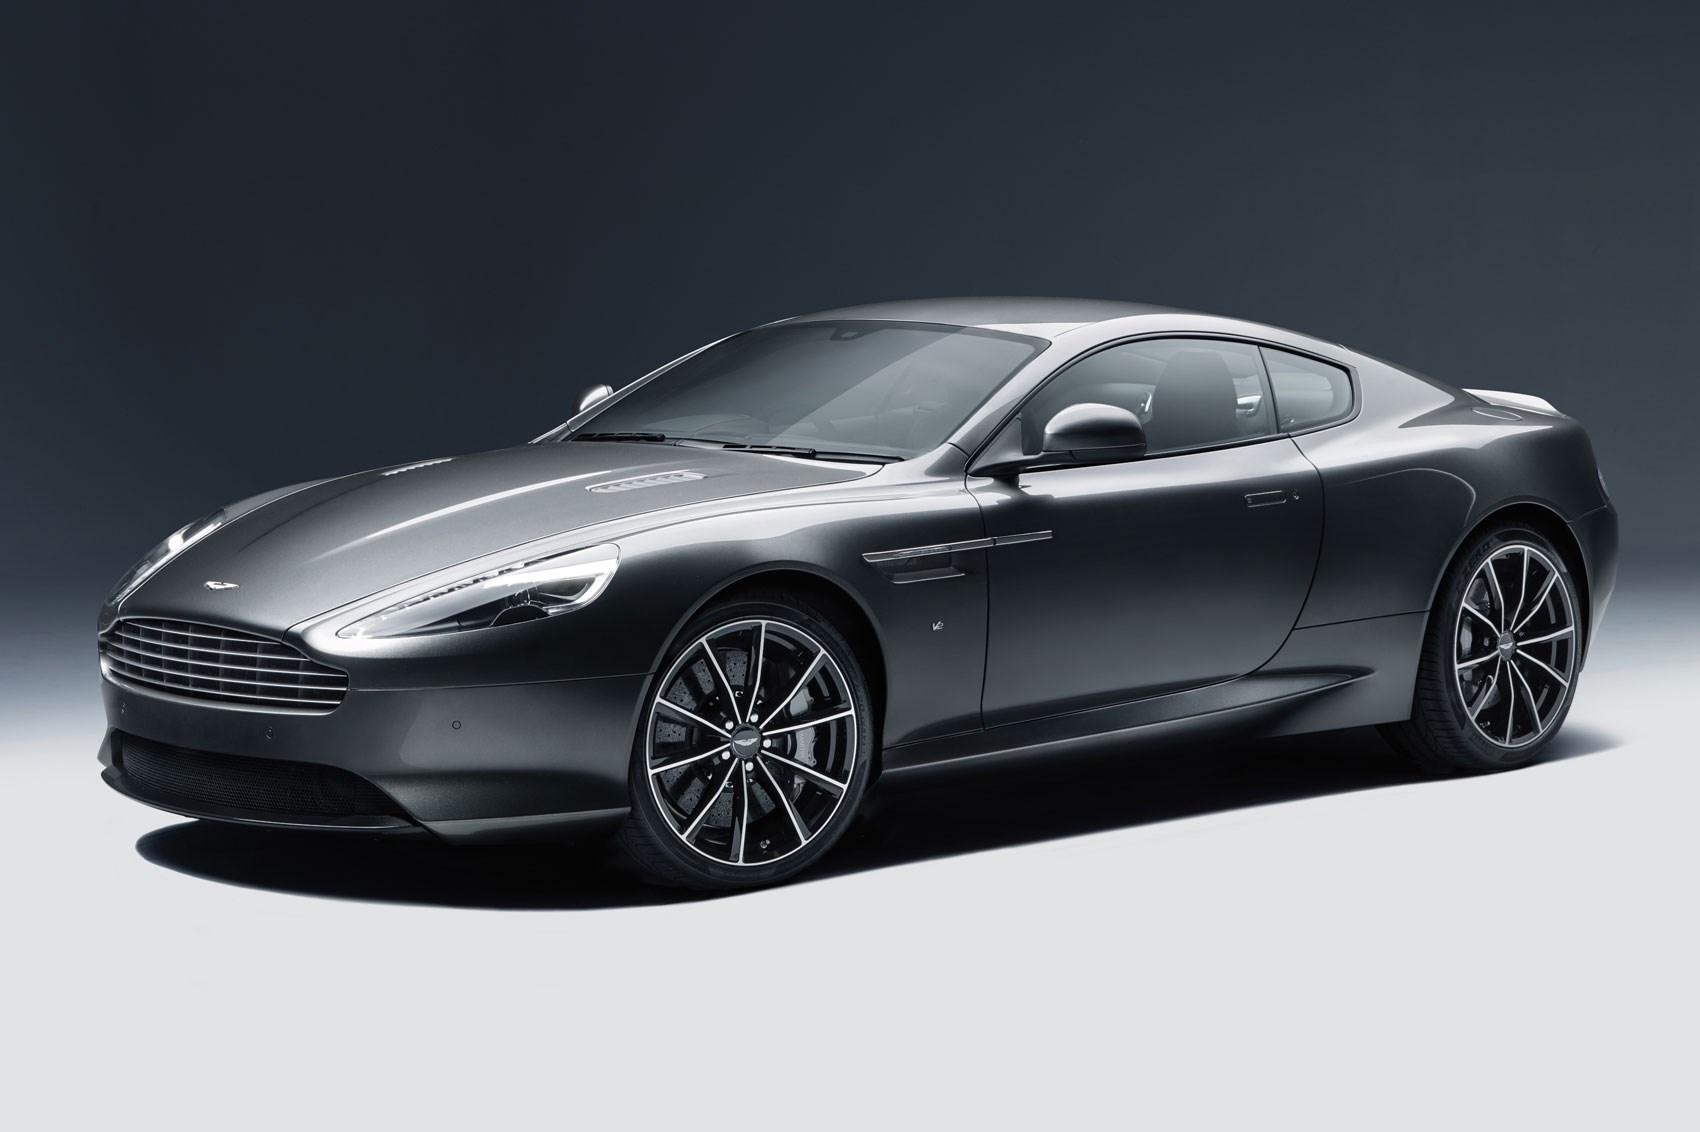 aston martin db9, photo #4